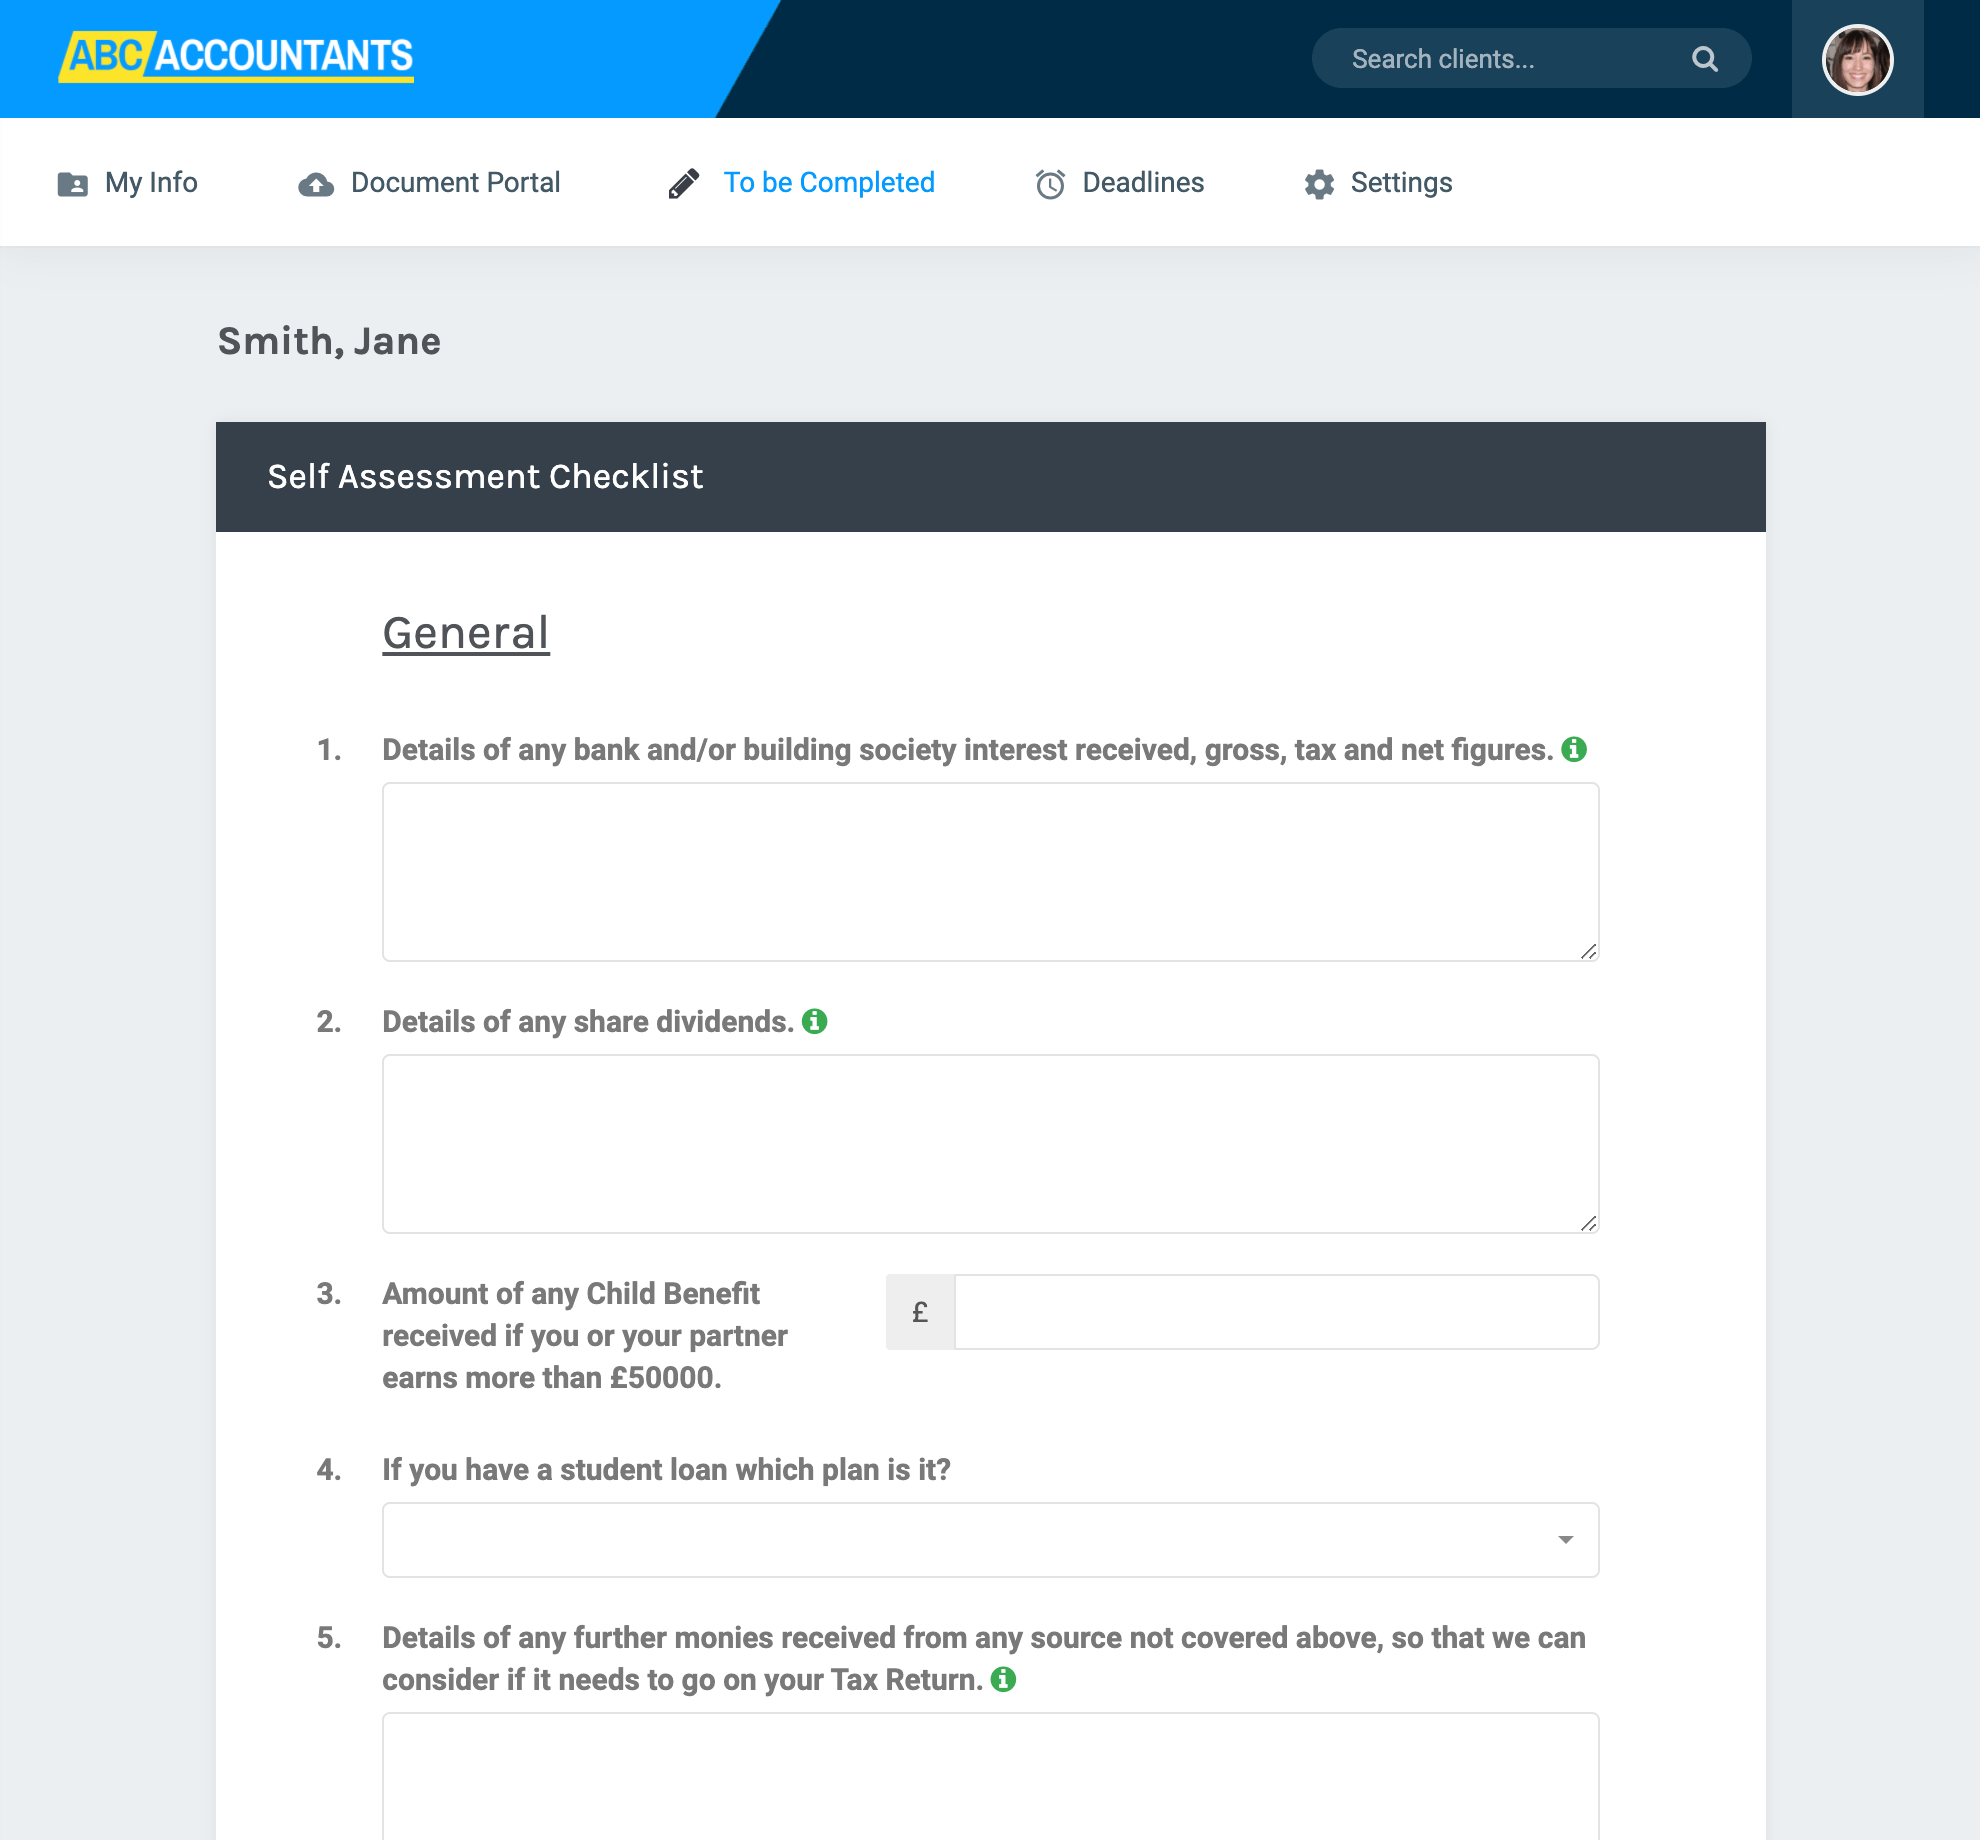 Share forms on the portal